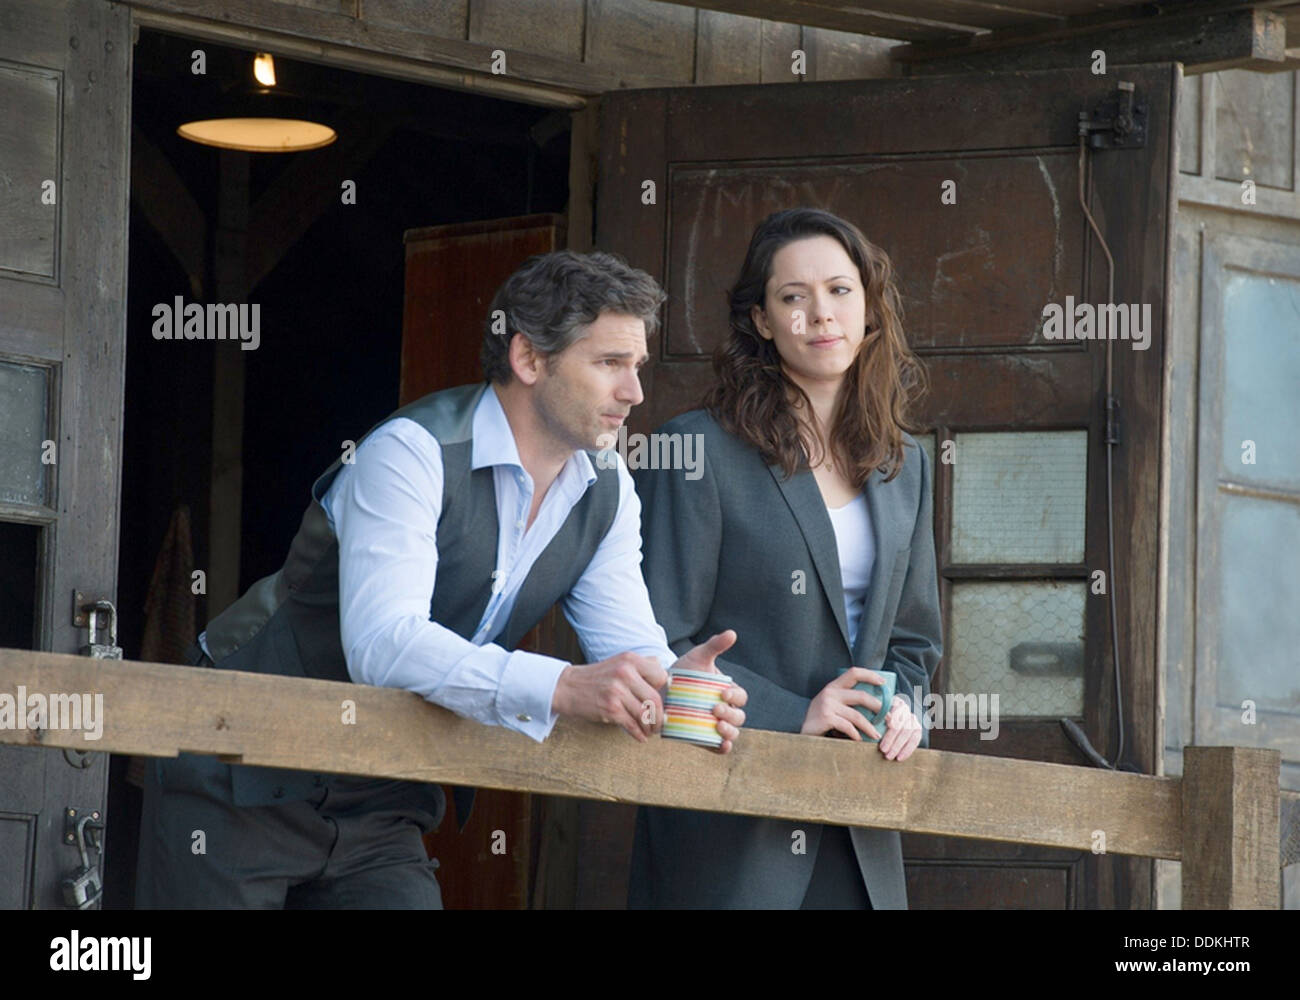 CLOSED CIRCUIT 2013 Focus Features film with Rebecca Hall and Eric Bana - Stock Image